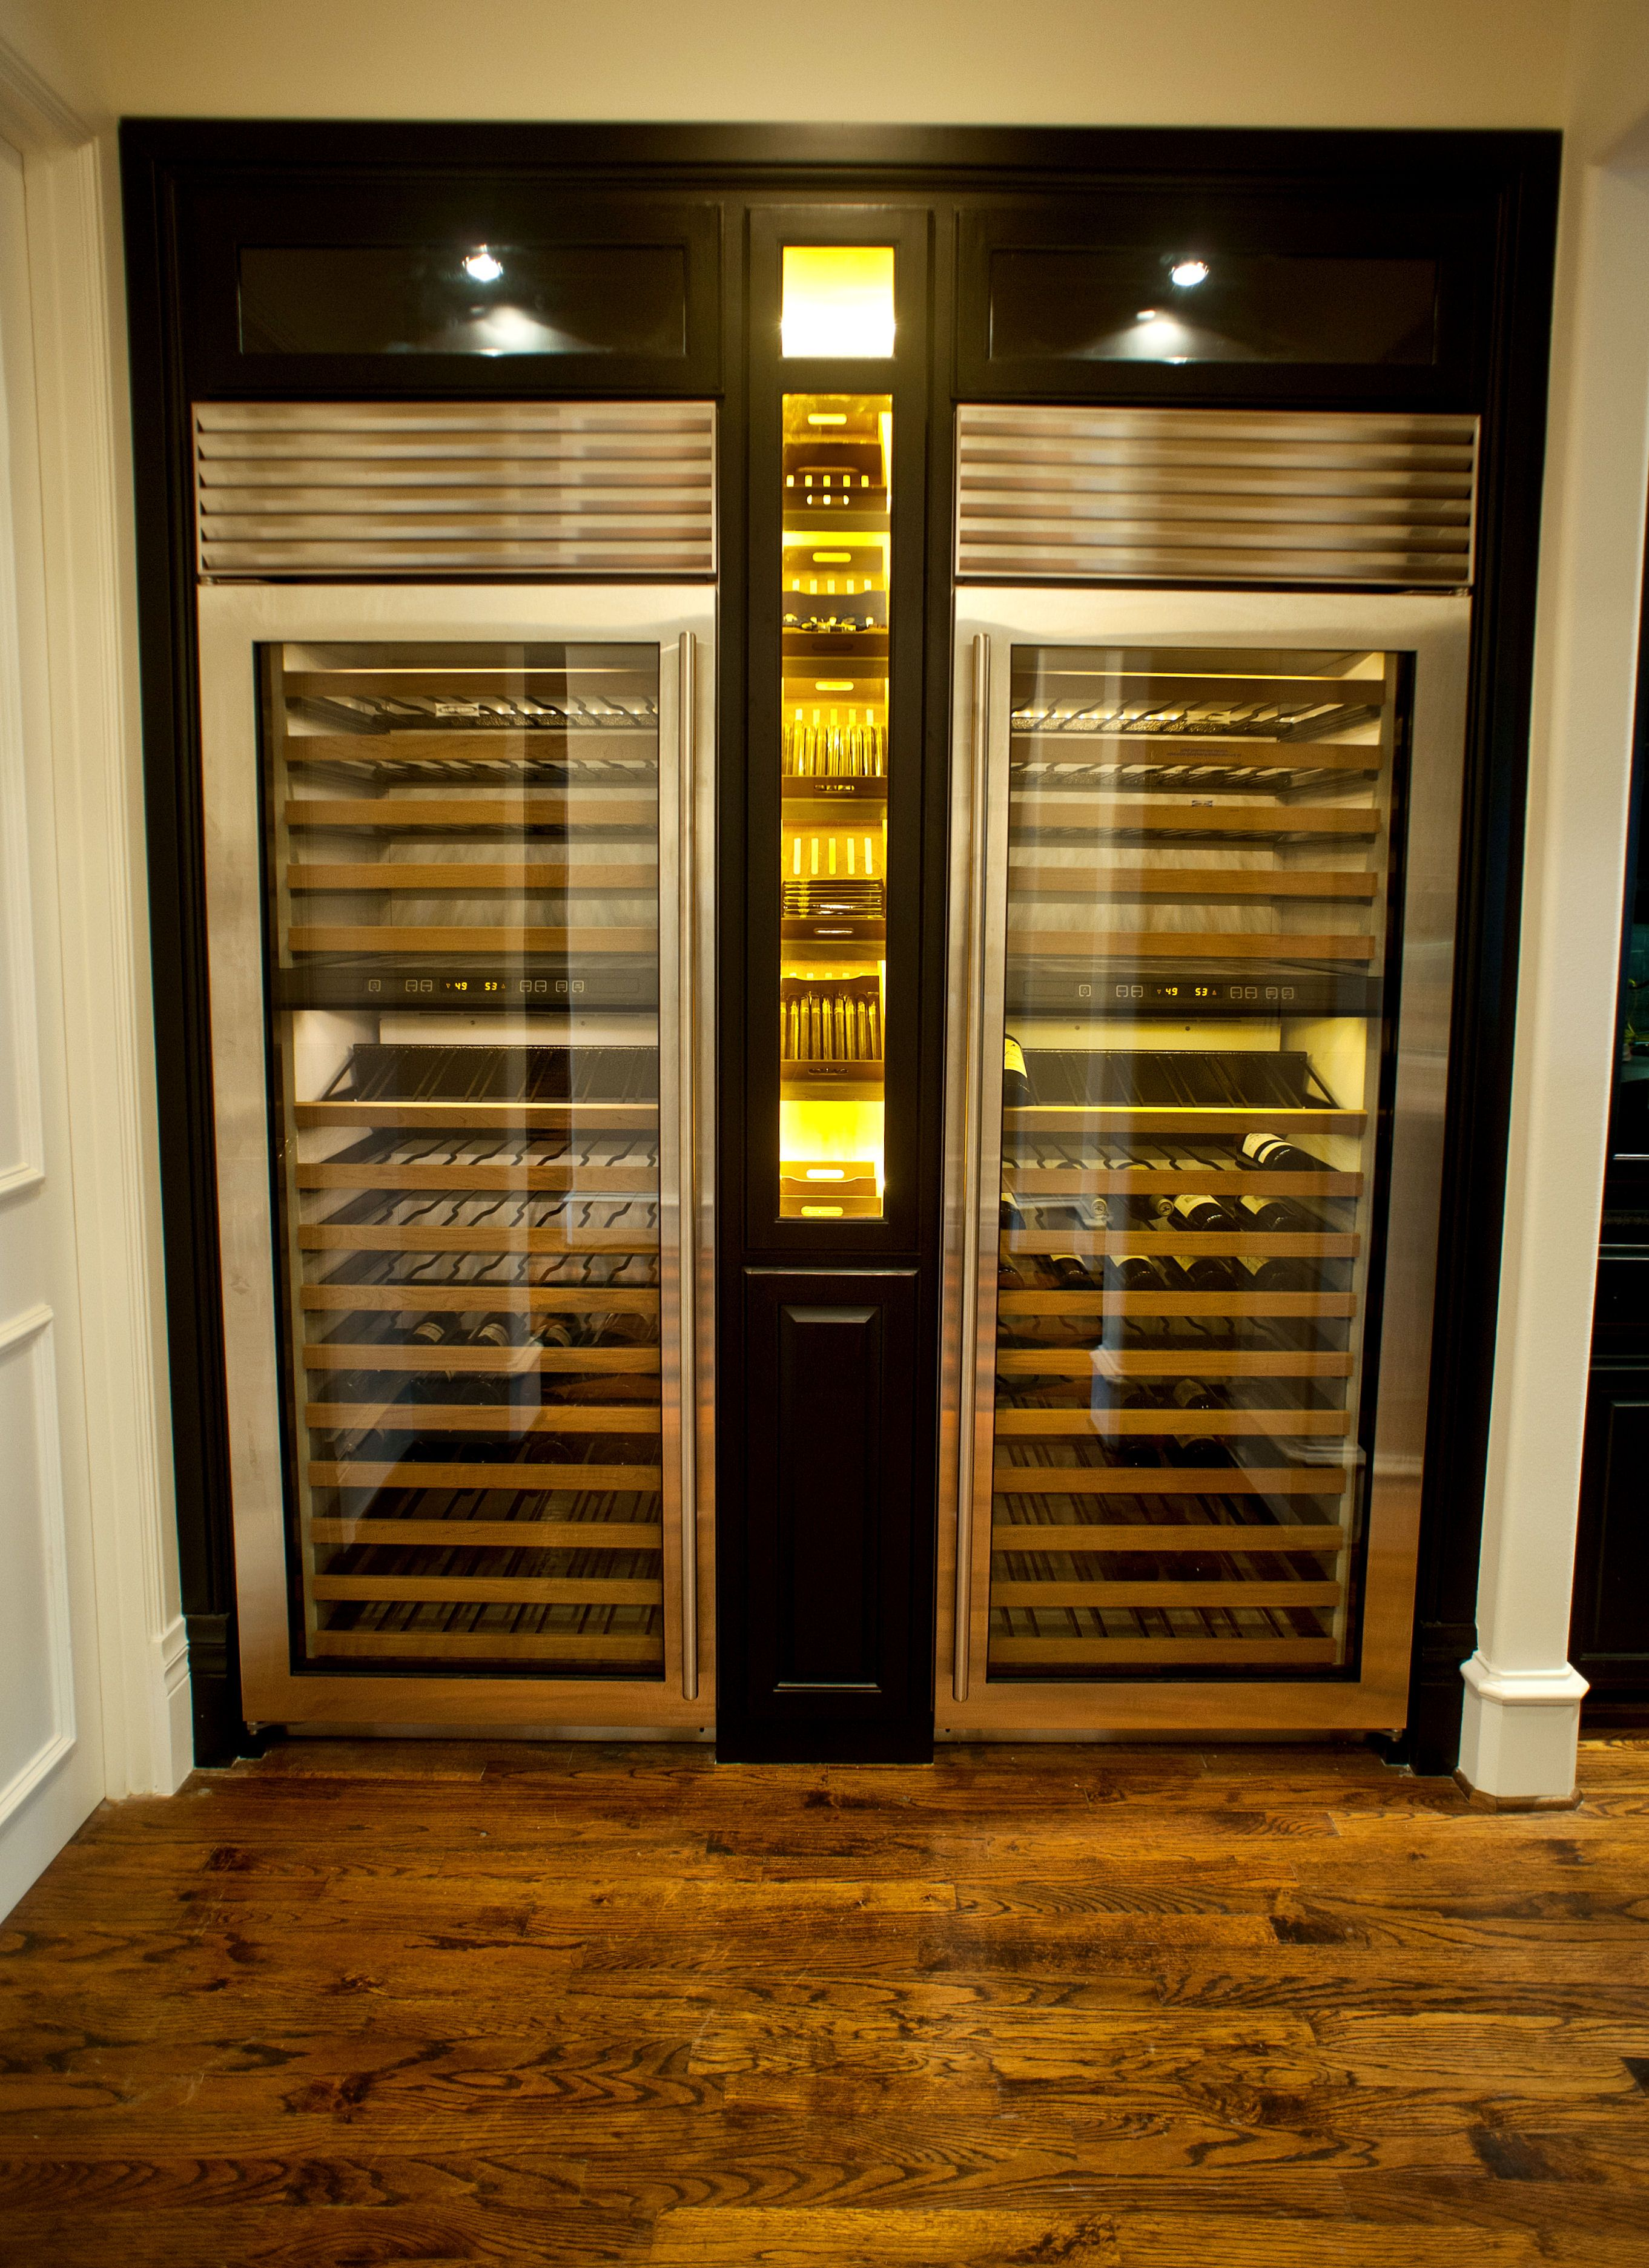 50c7eeea13b3d Thermador Wine Columns with custom Cigar Humidor adorned by LED lighting.  That s the nuts!